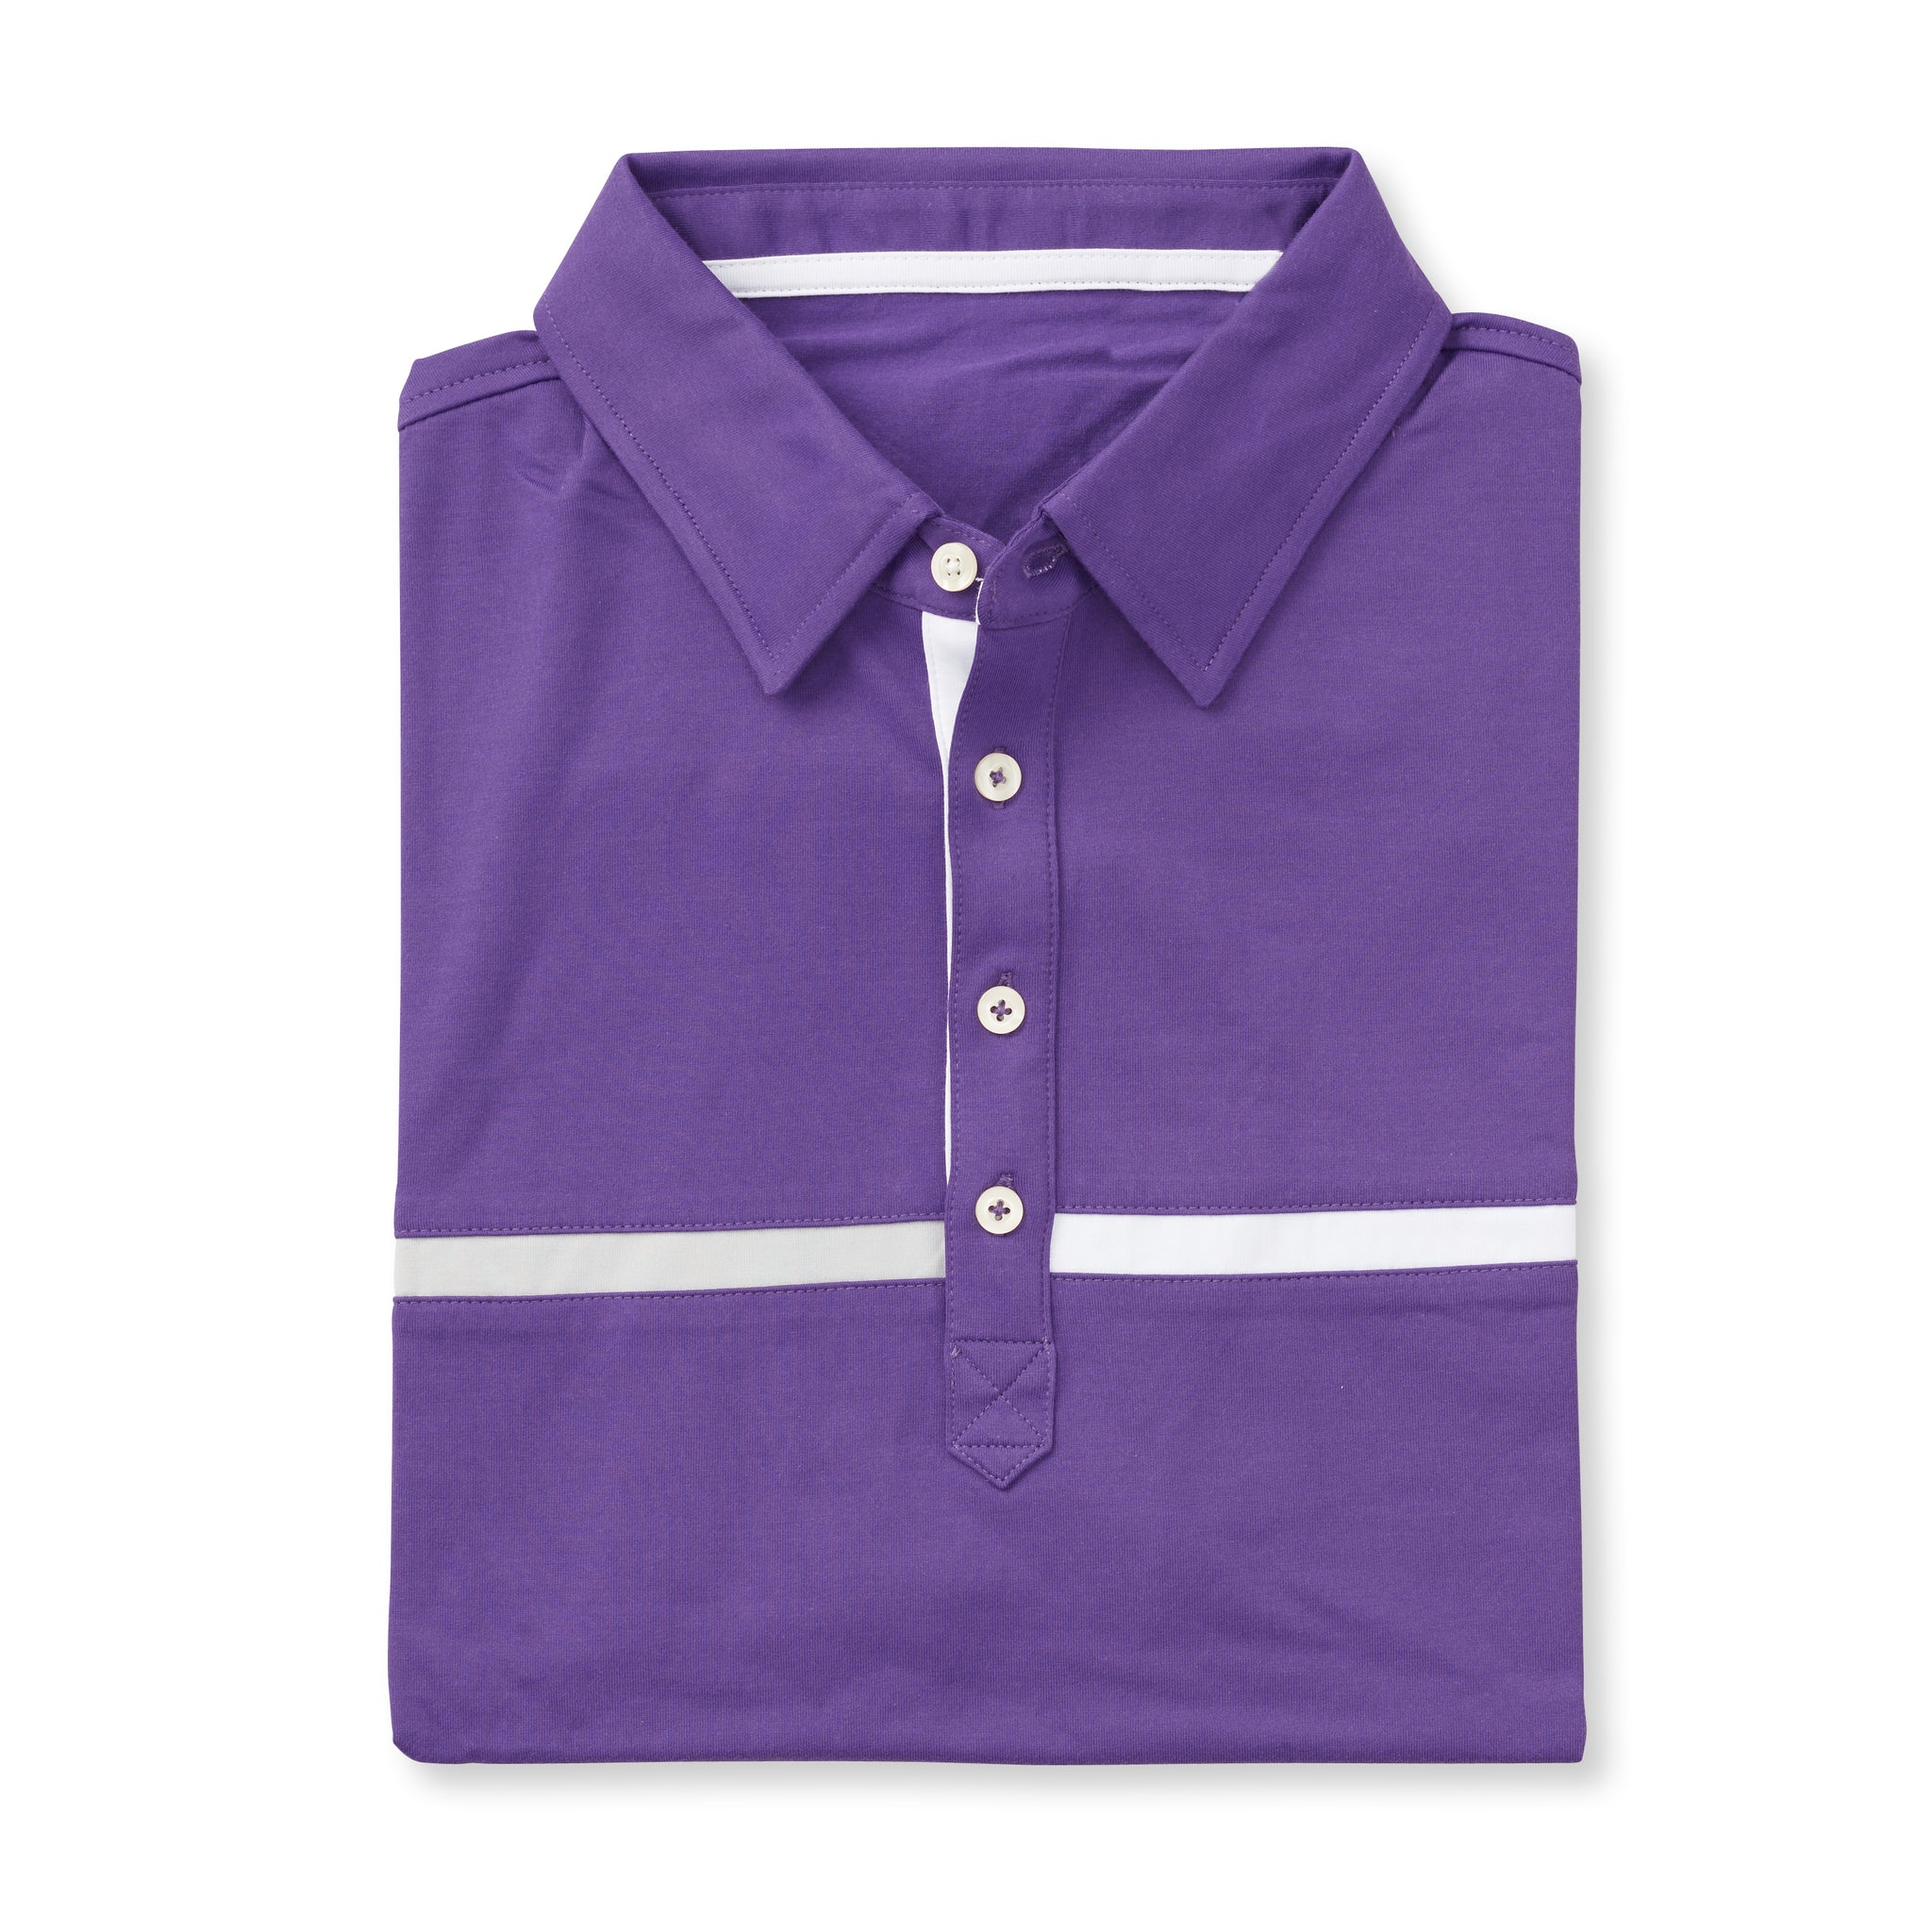 LUXTEC Champions Color Block Short Sleeve Polo - Berry IS72420